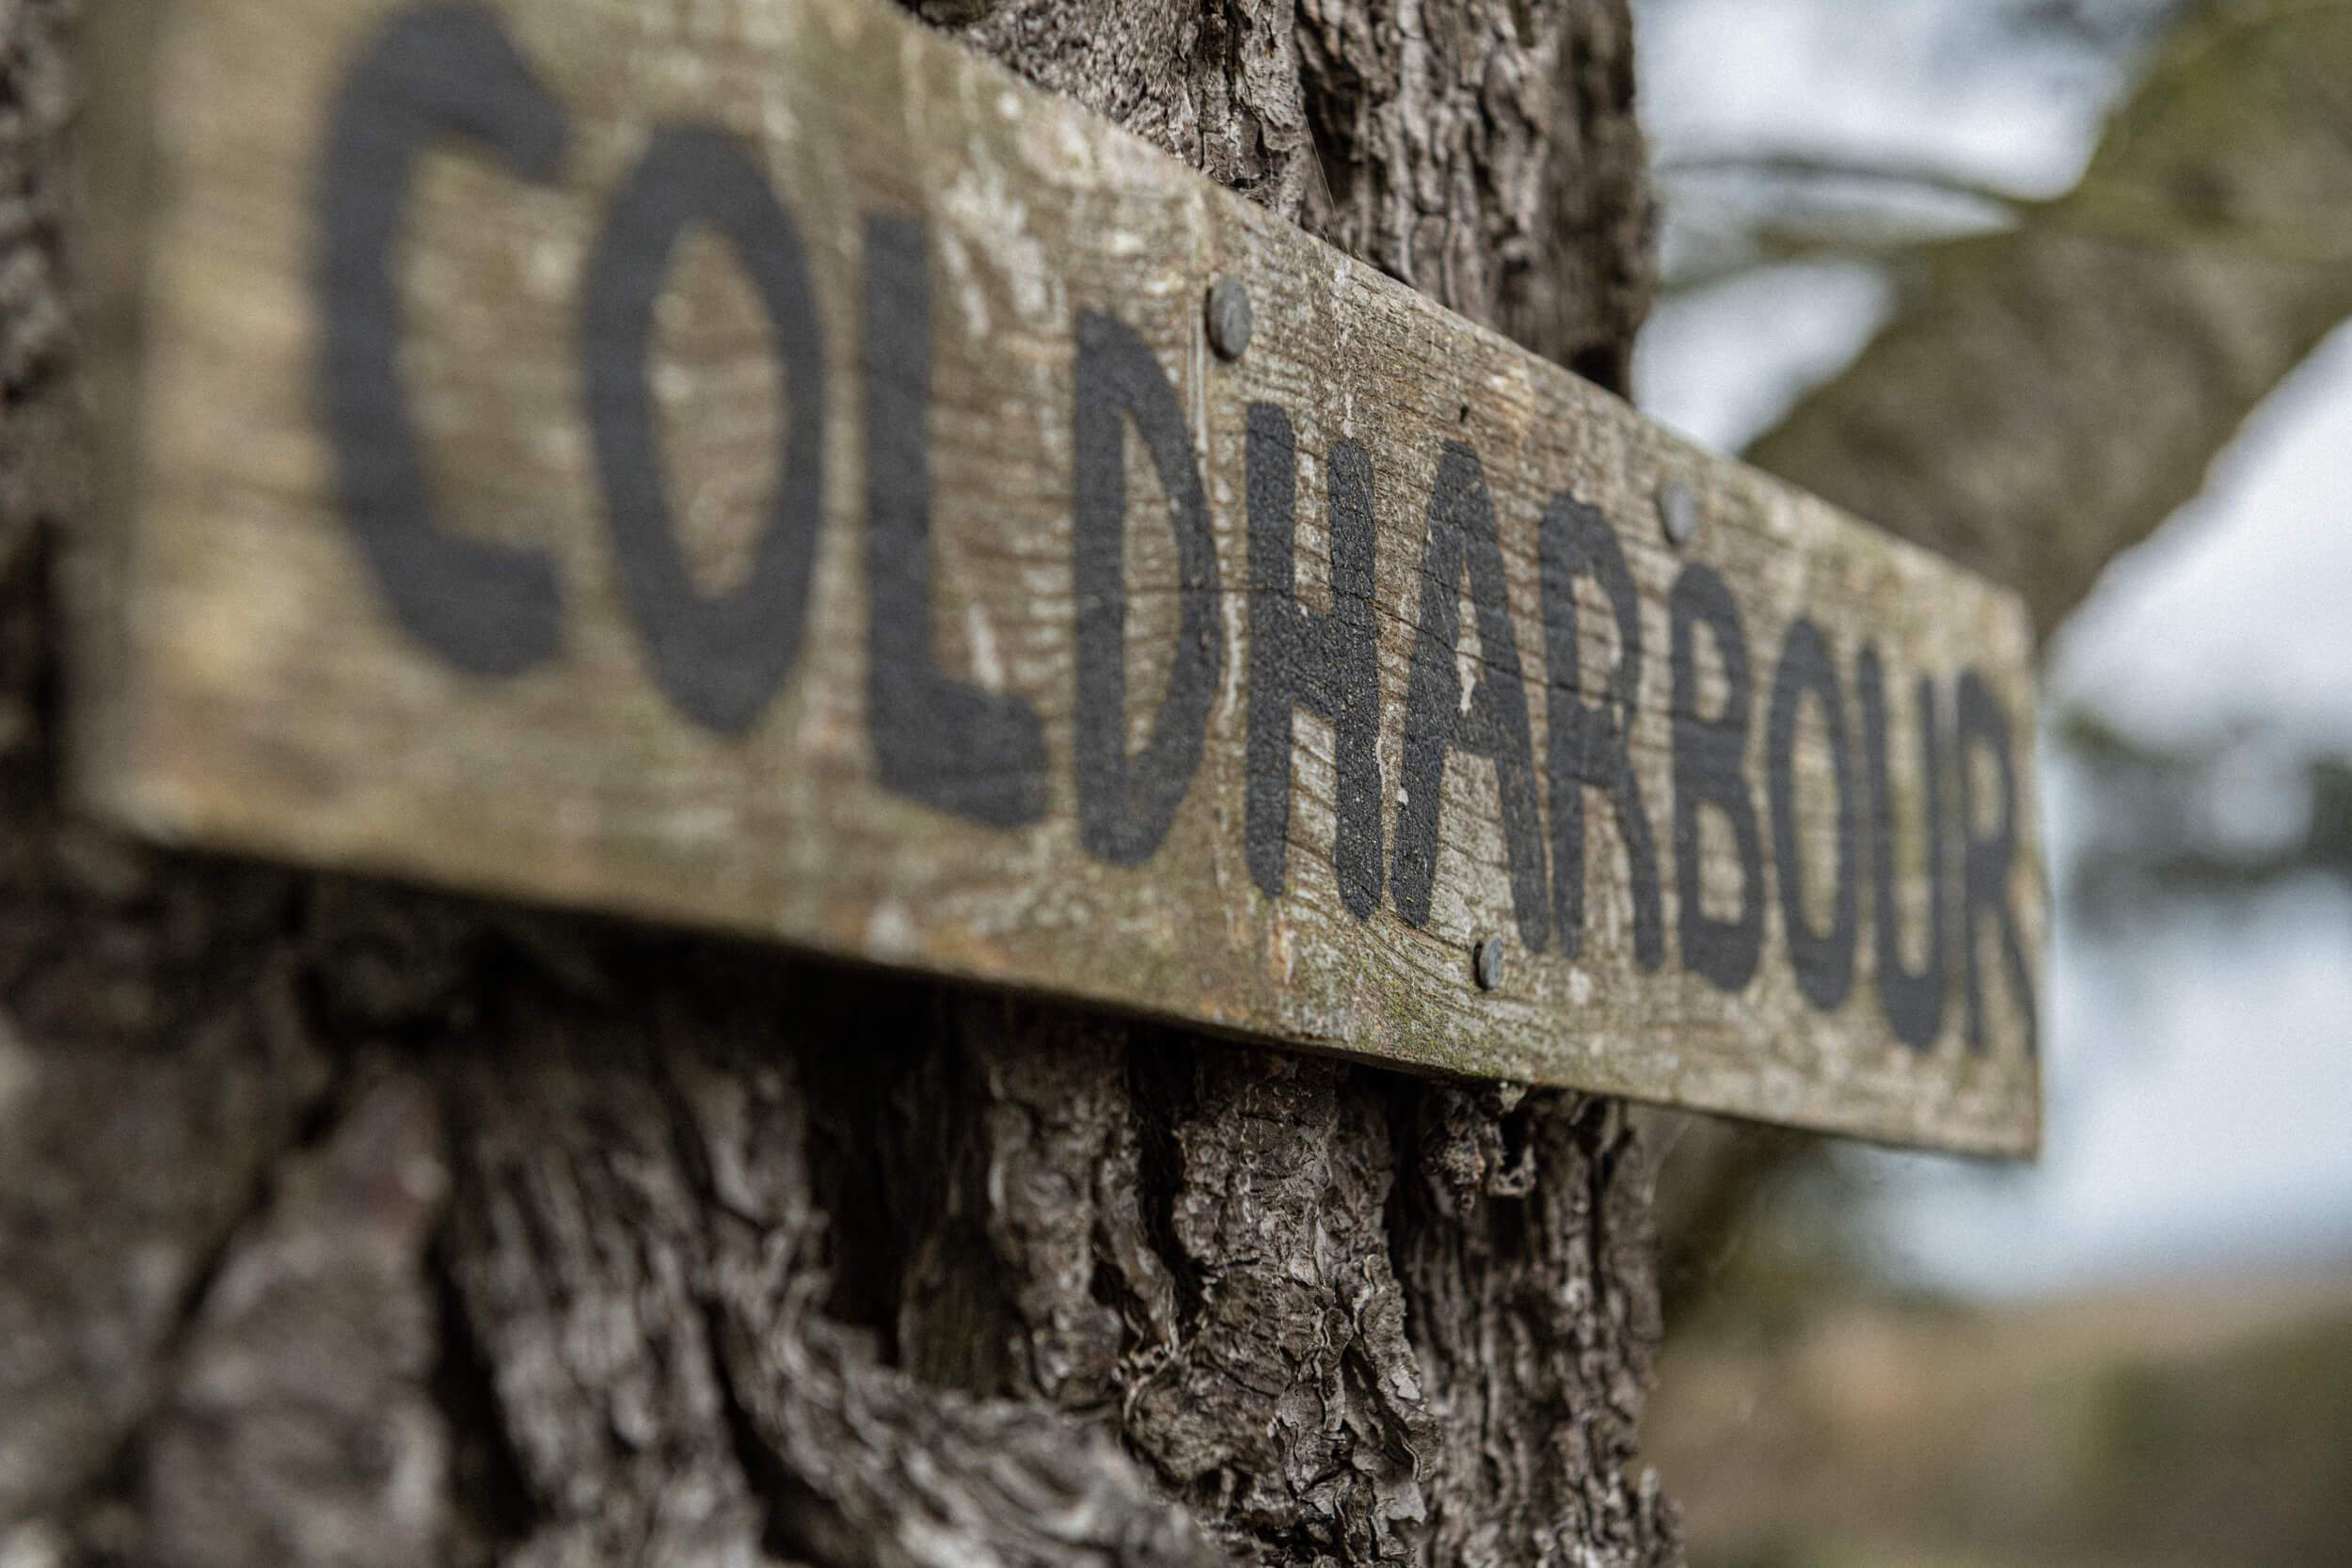 The old Coldharbour farm sign